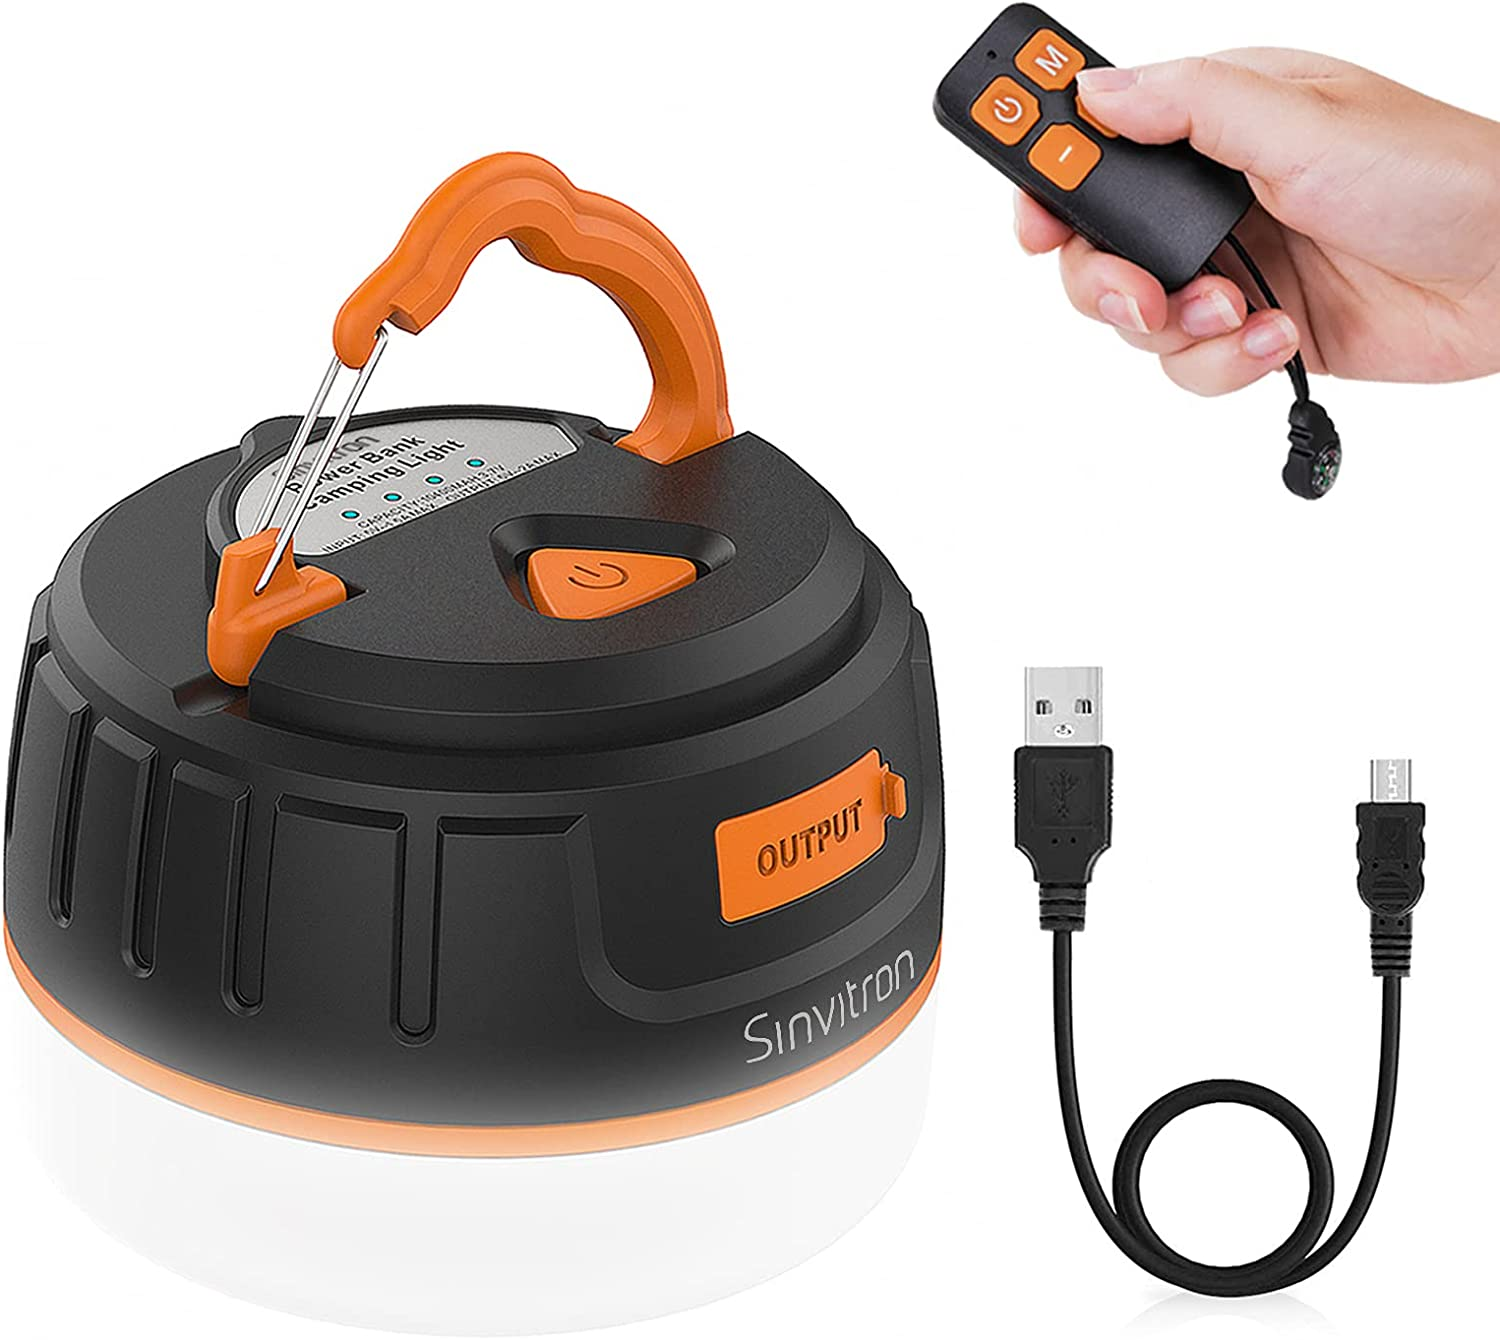 Top Deals On Hiking Gadgets - Portable Outdoor Lantern